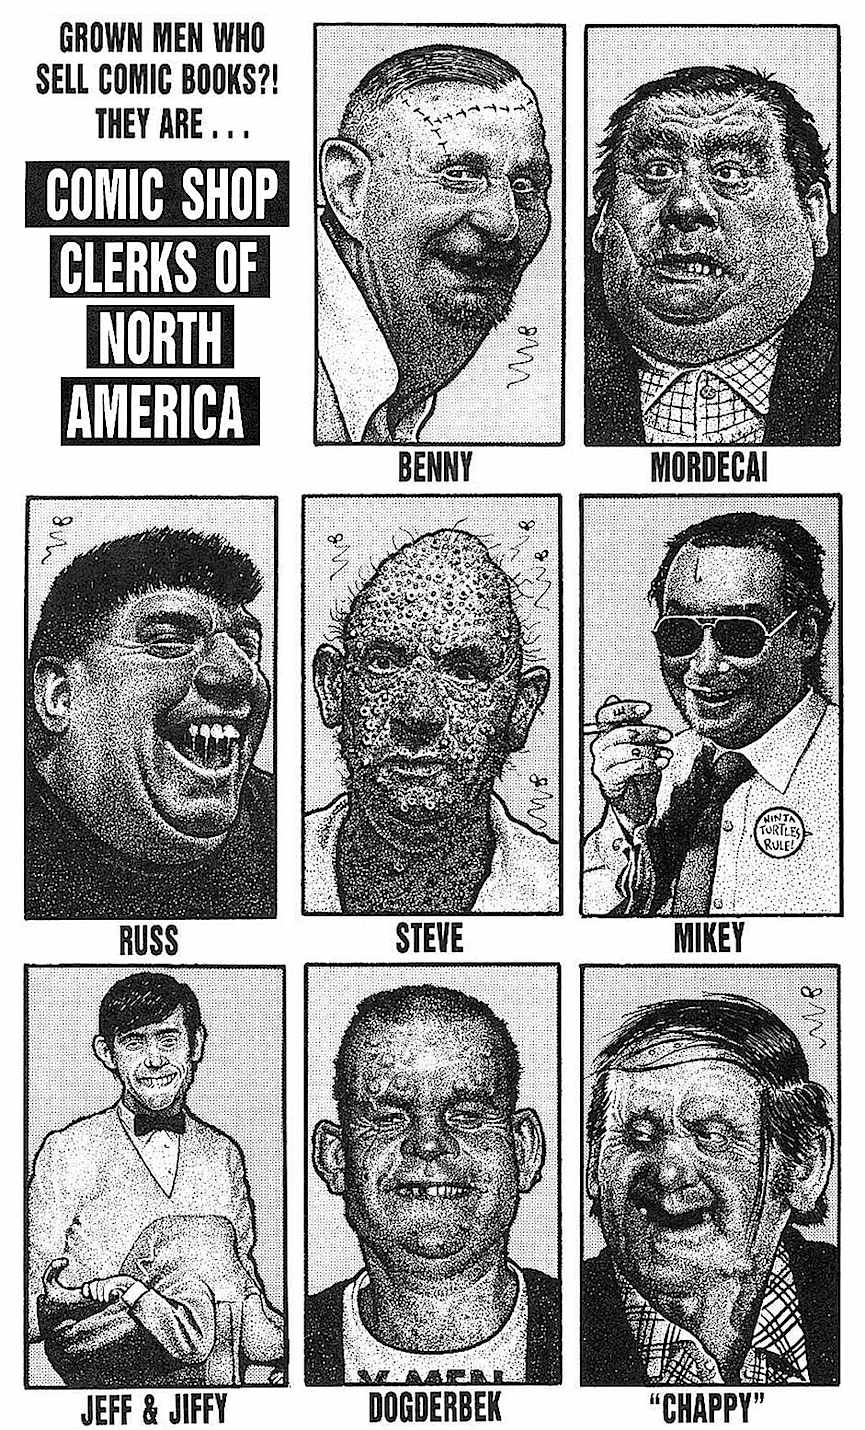 Drew Friedman's comic shop clerks of North America